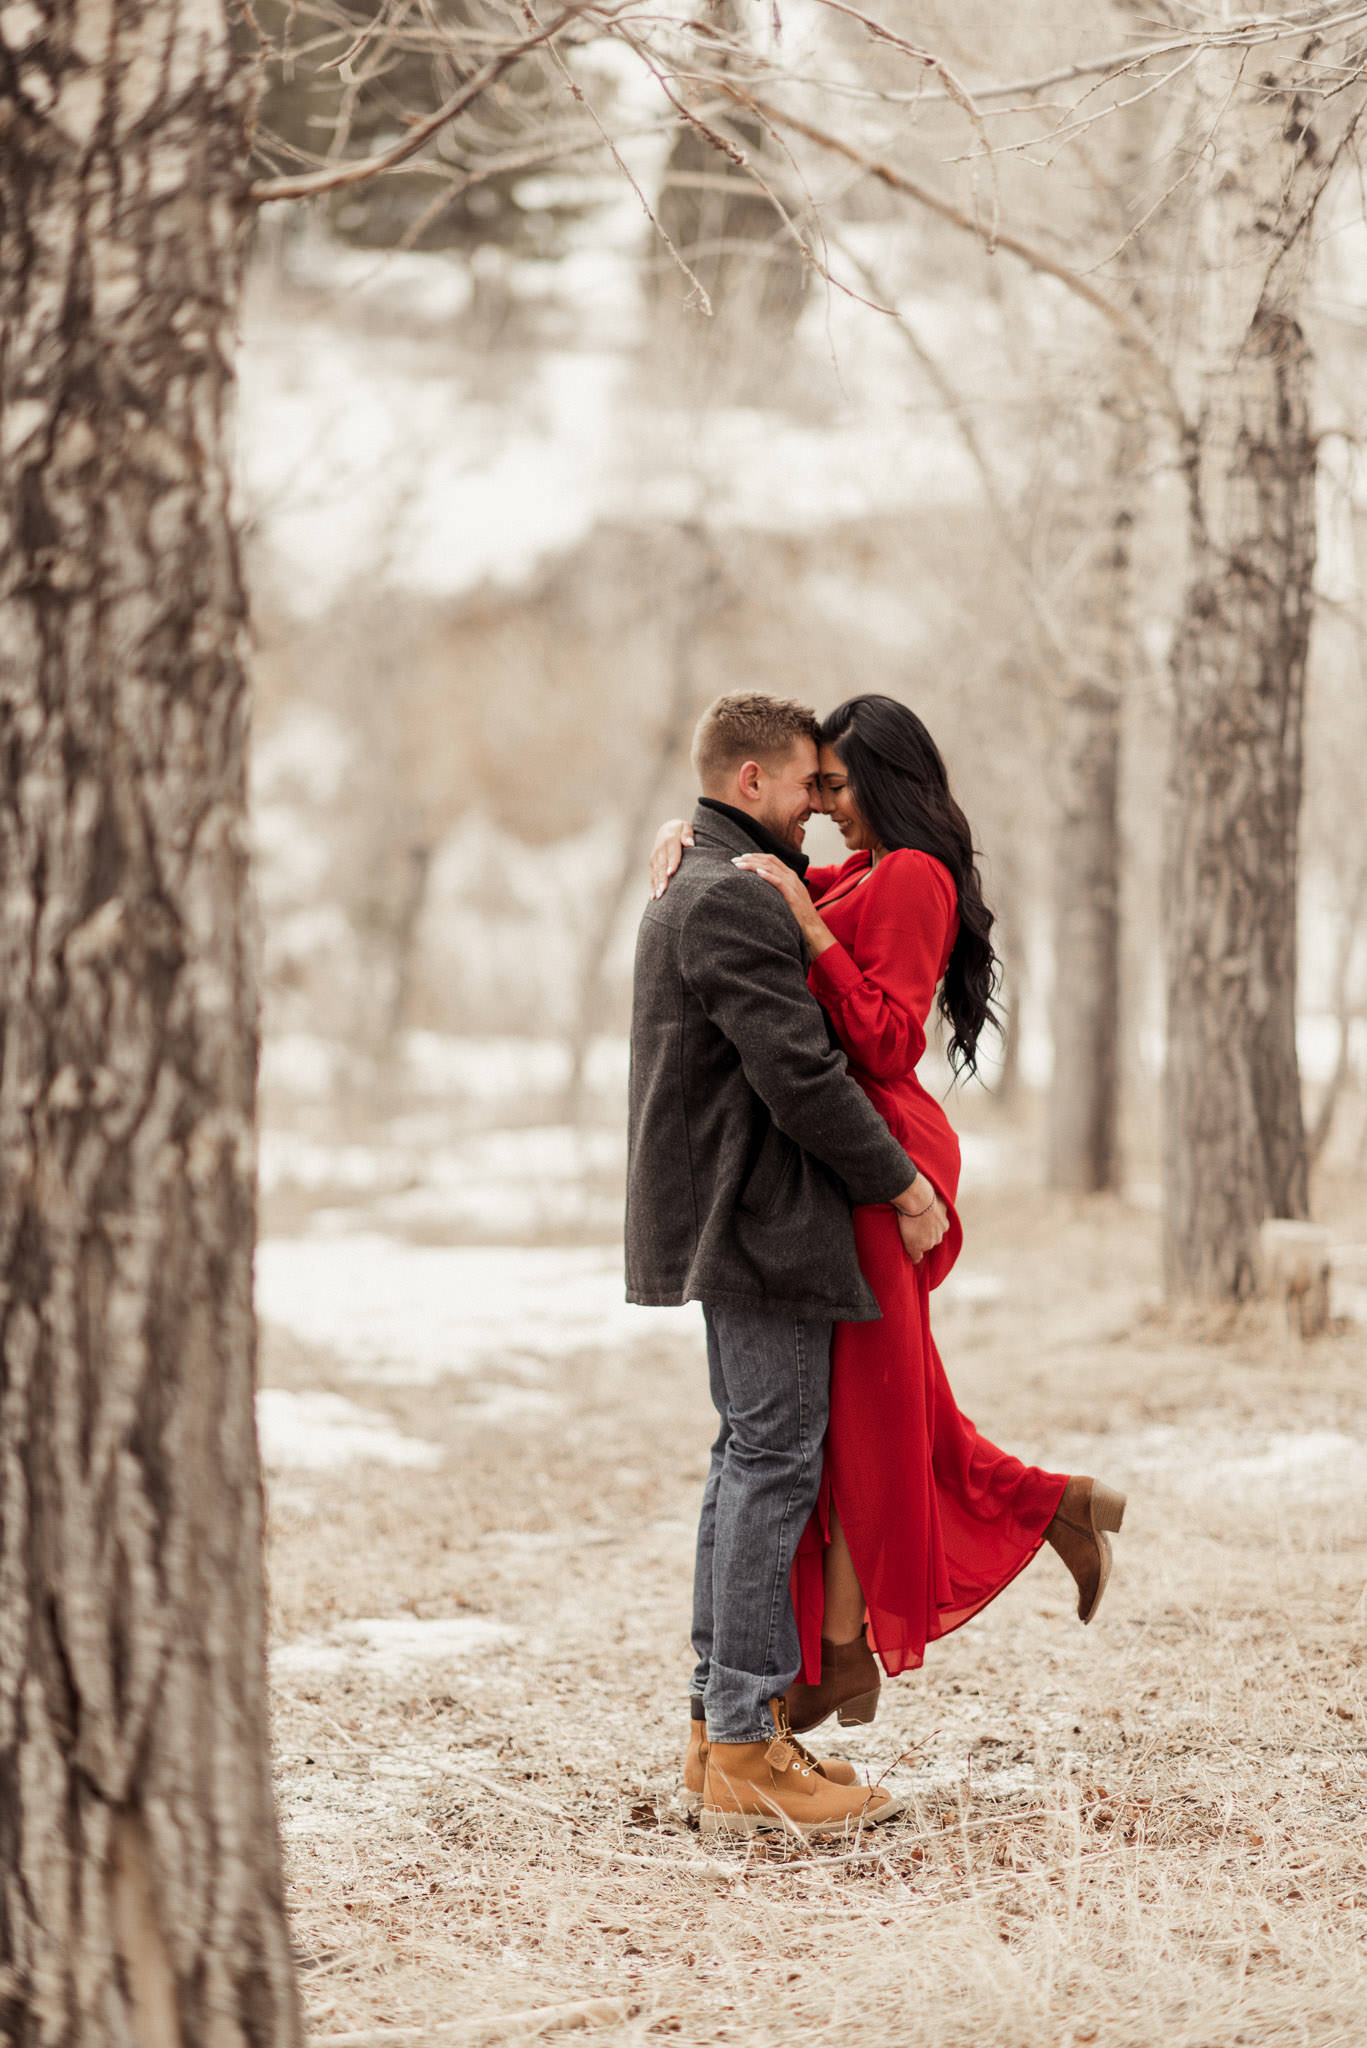 sandra-ryan-colorado-winter-snow-engagement-couples-valentines-red-houston-photographer-sm-30.jpg